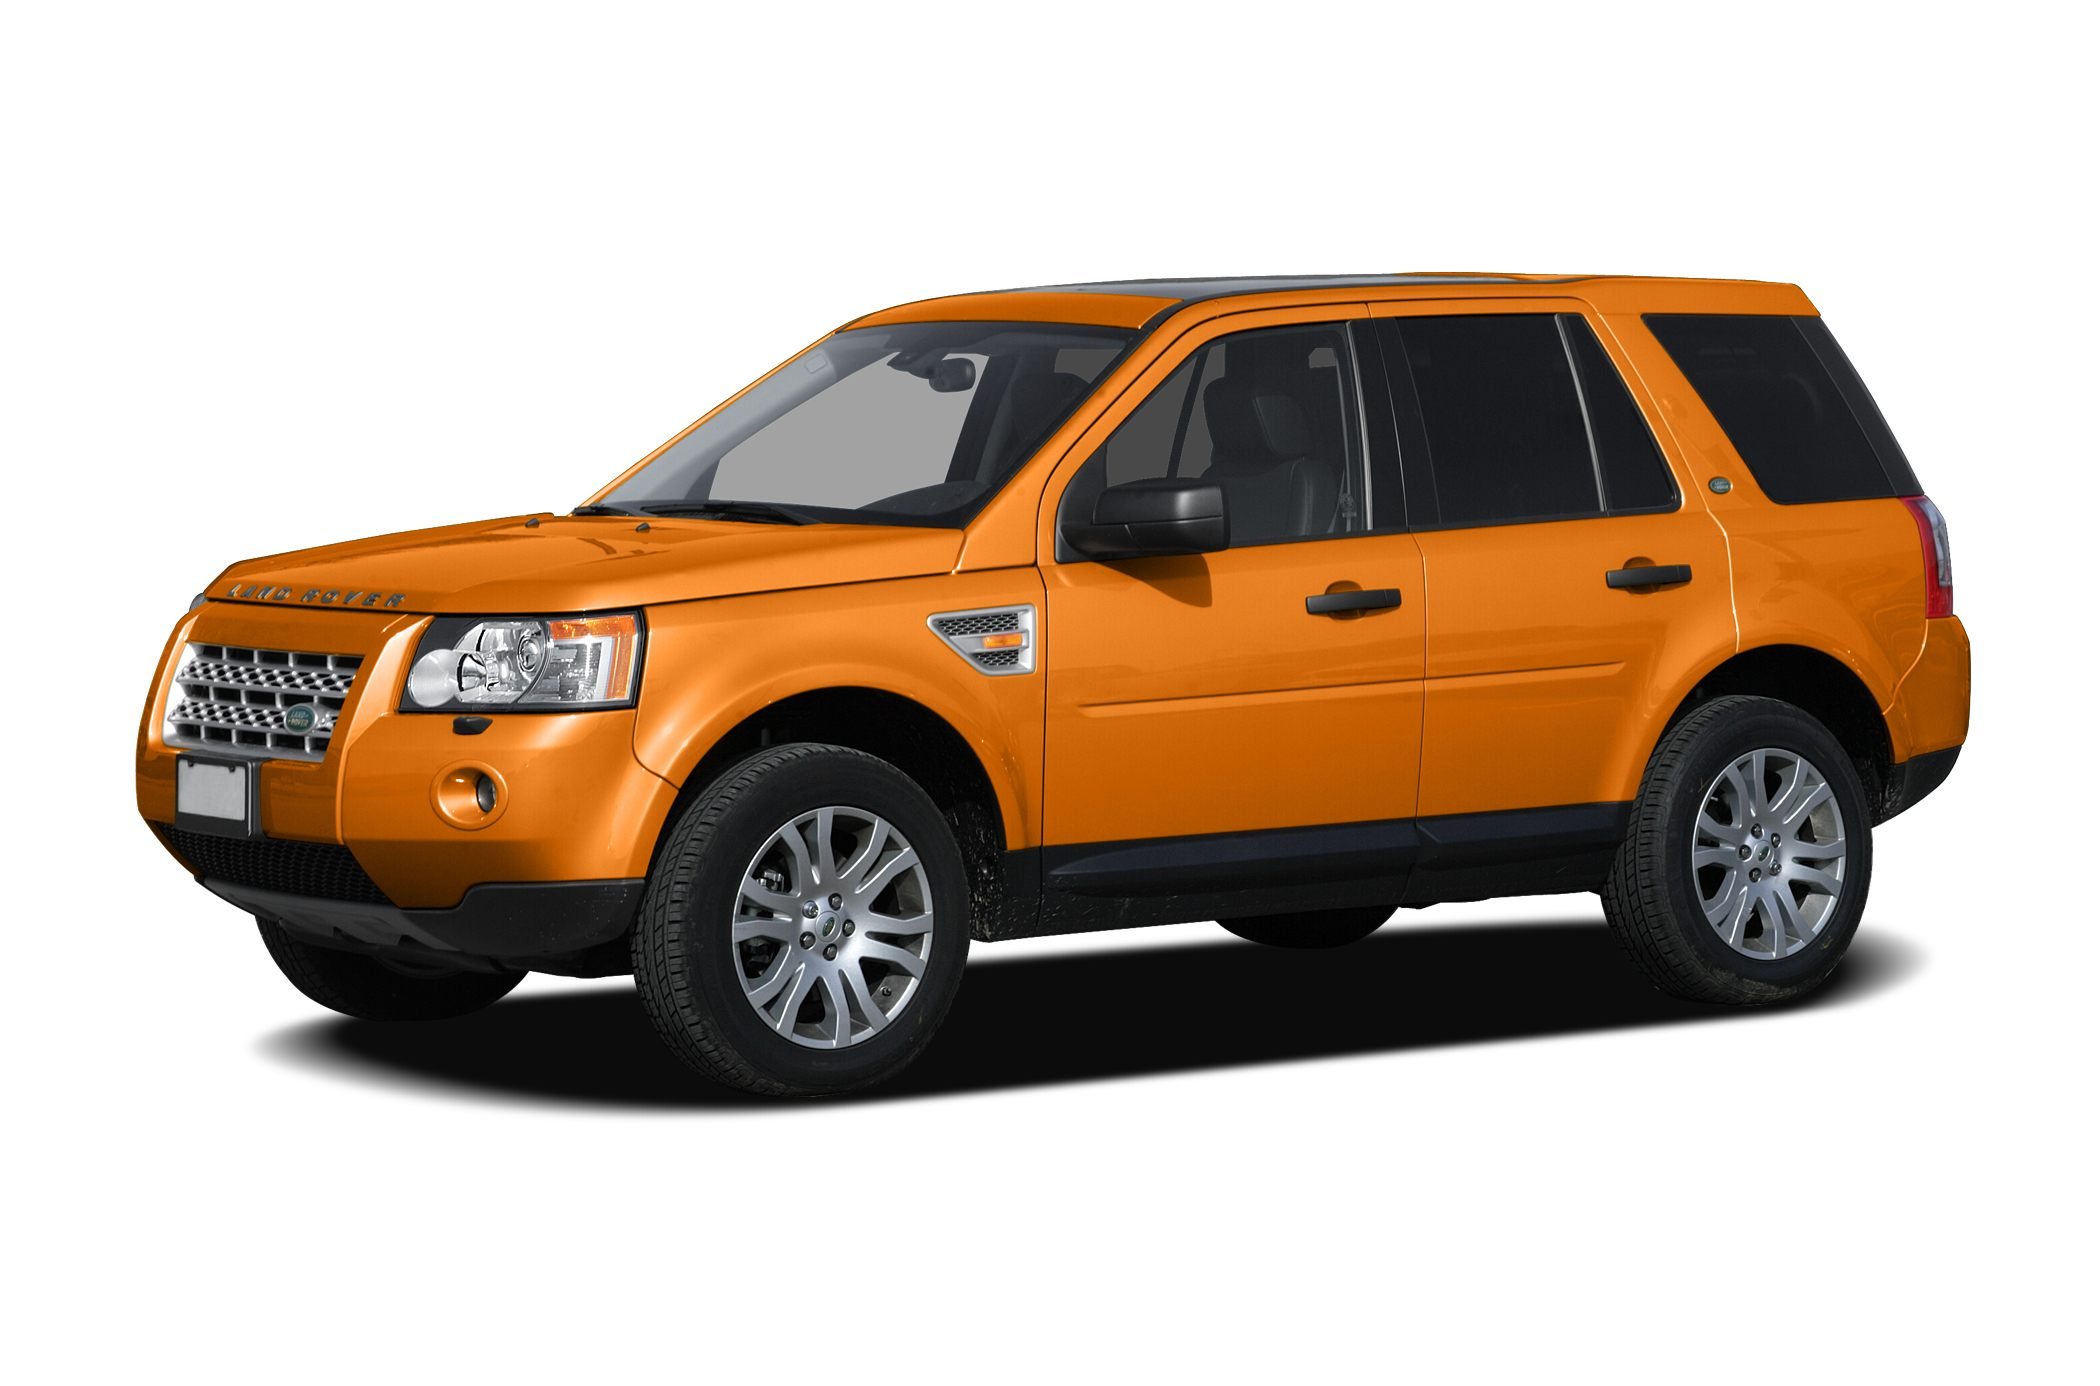 2008 Land Rover LR2 HSE  COME SEE THE DIFFERENCE AT TAJ AUTO MALL WE SELL OUR VEHICLES AT